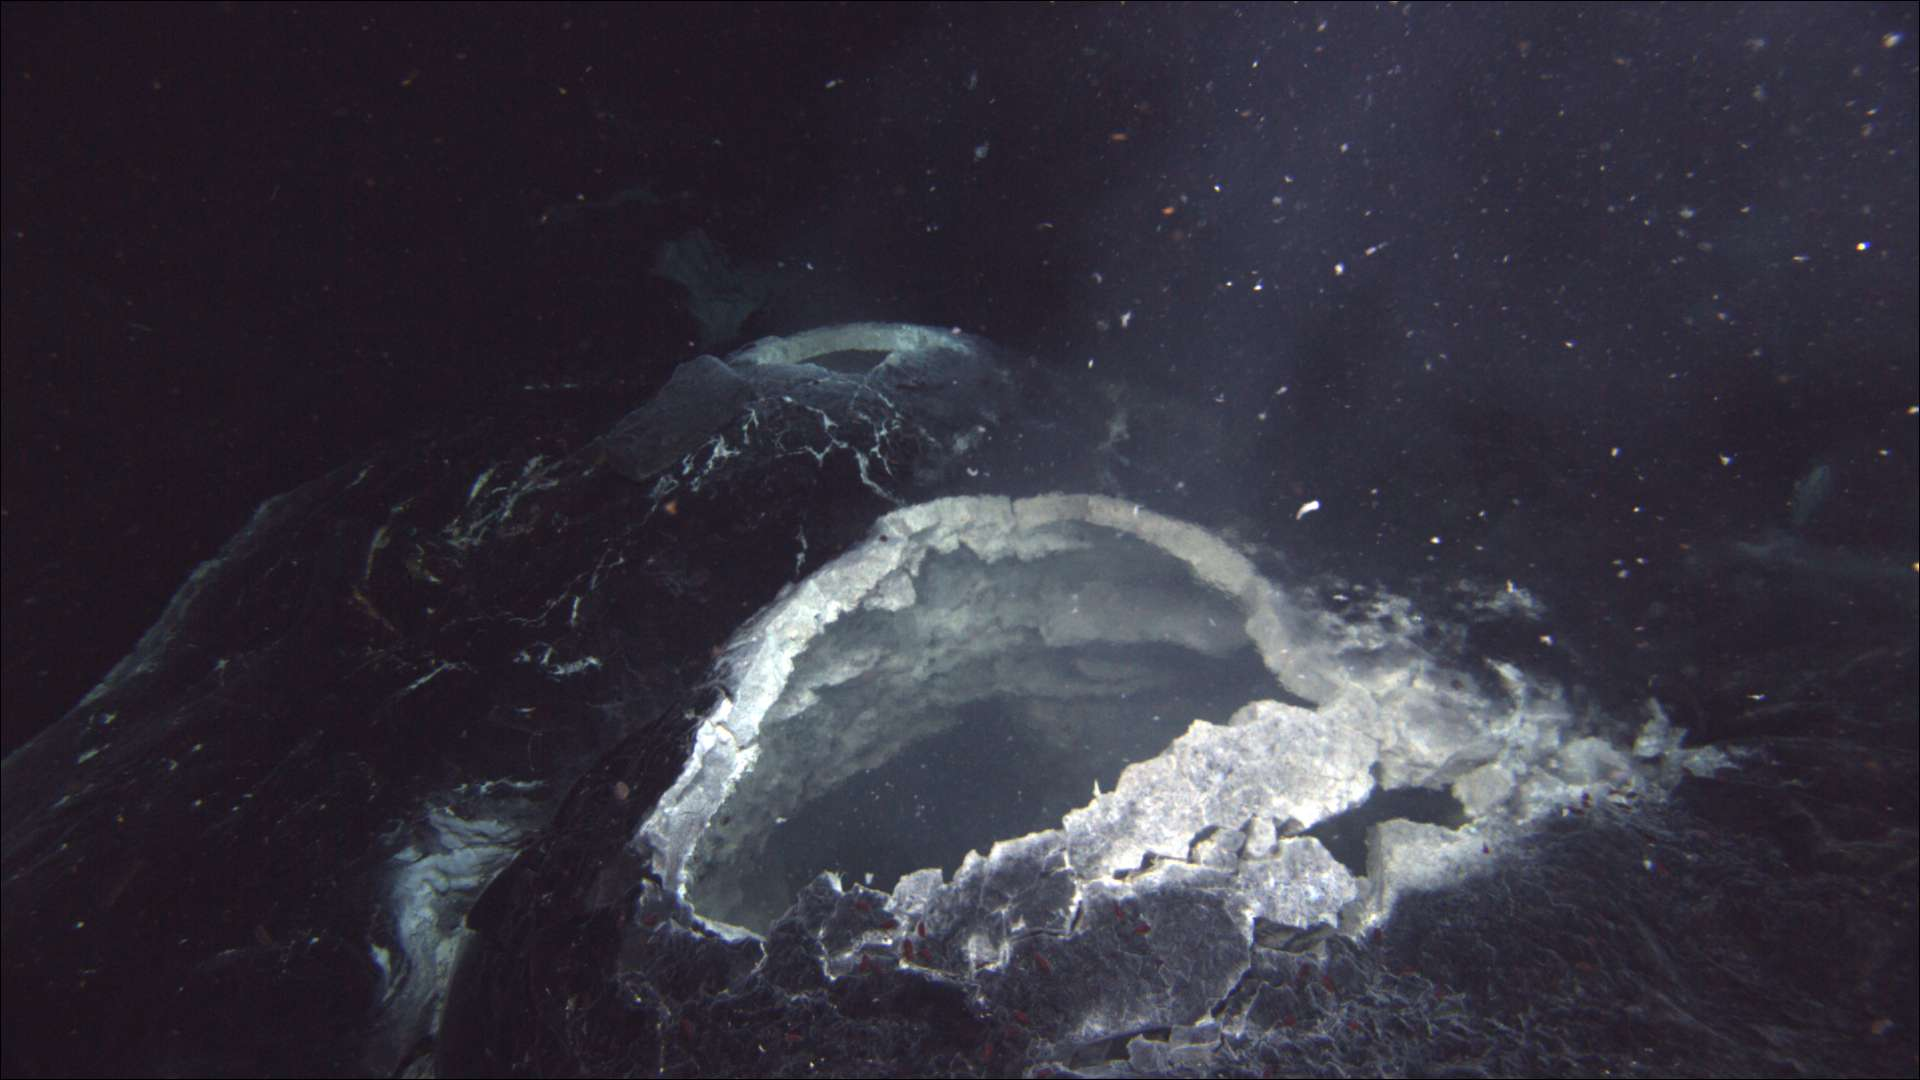 snowblower hydrothermal vent, Axial Seamount